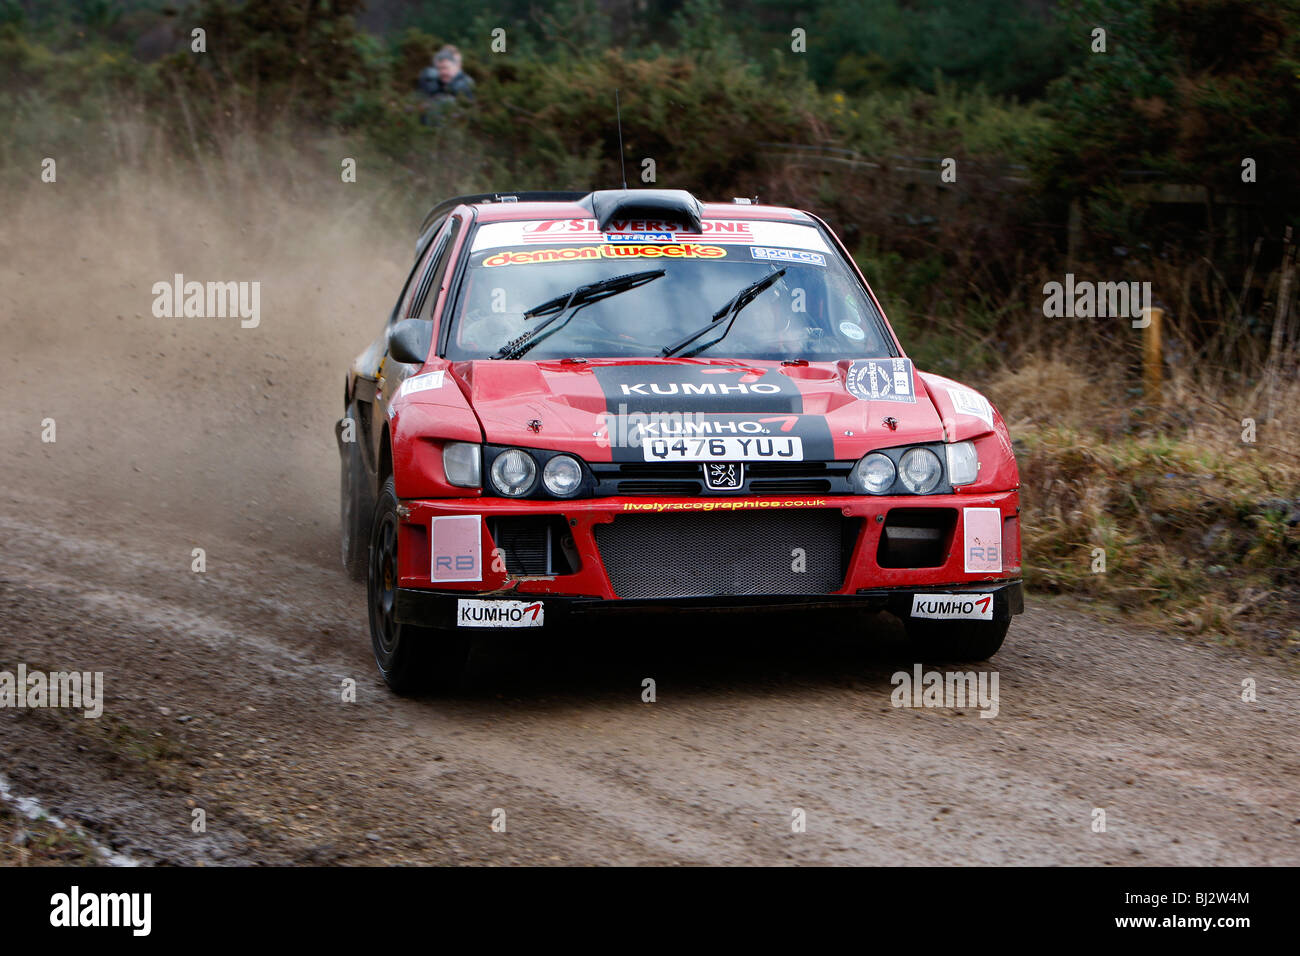 Andy Burton's Peugeot Cosworth at the 2010 Rallye Sunseeker. - Stock Image